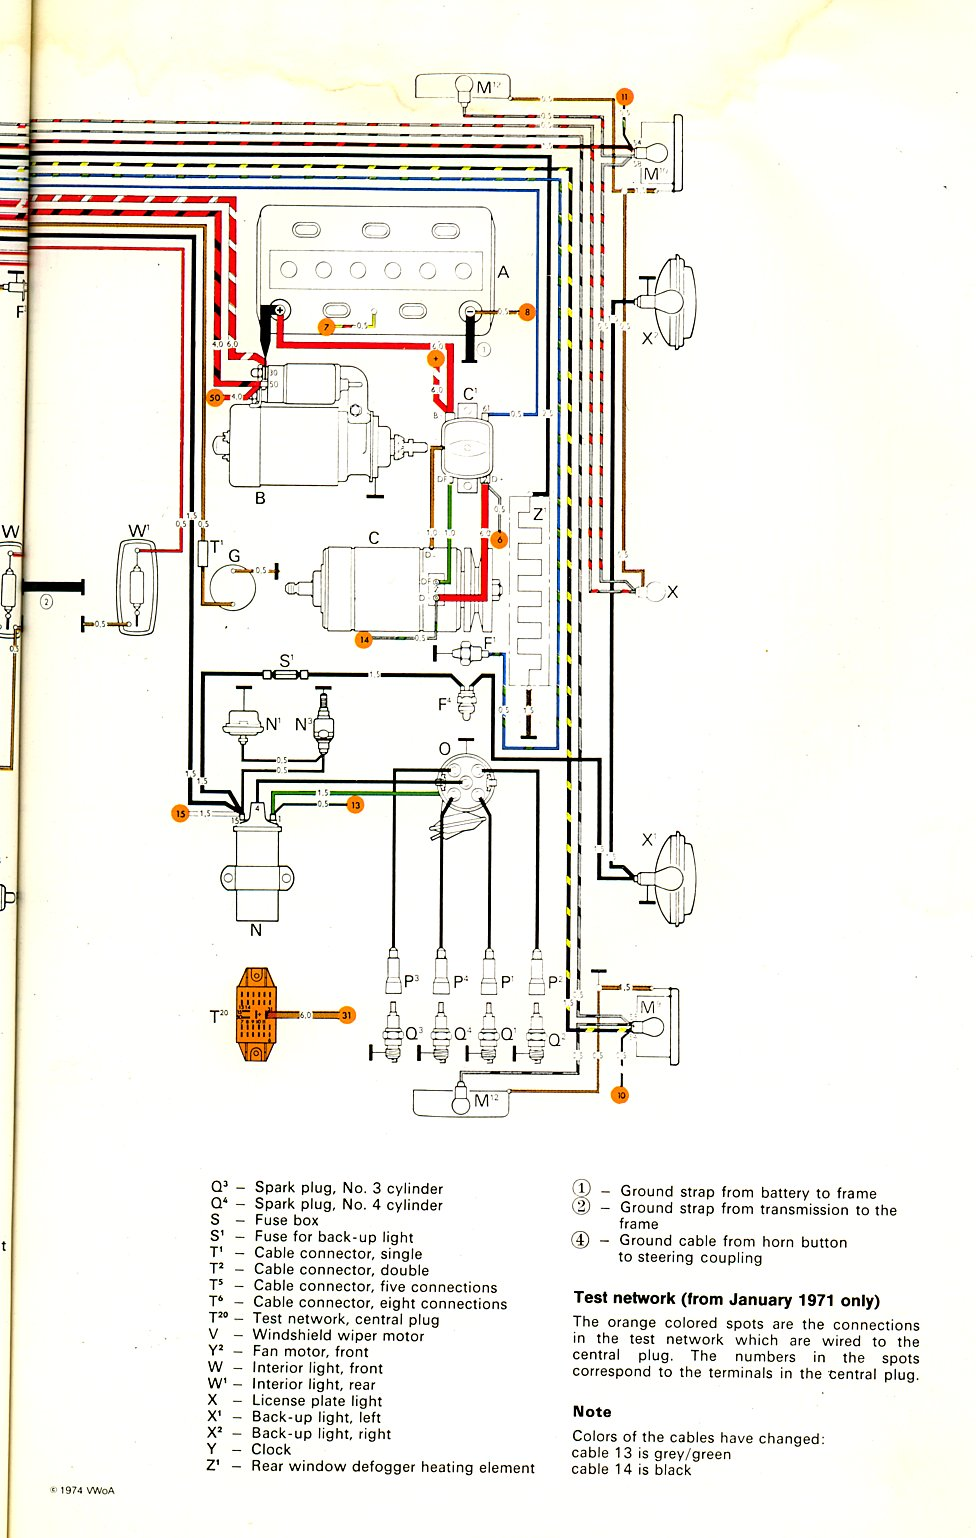 Type 2 Wiring Diagrams 1990 Yj Heater Diagram